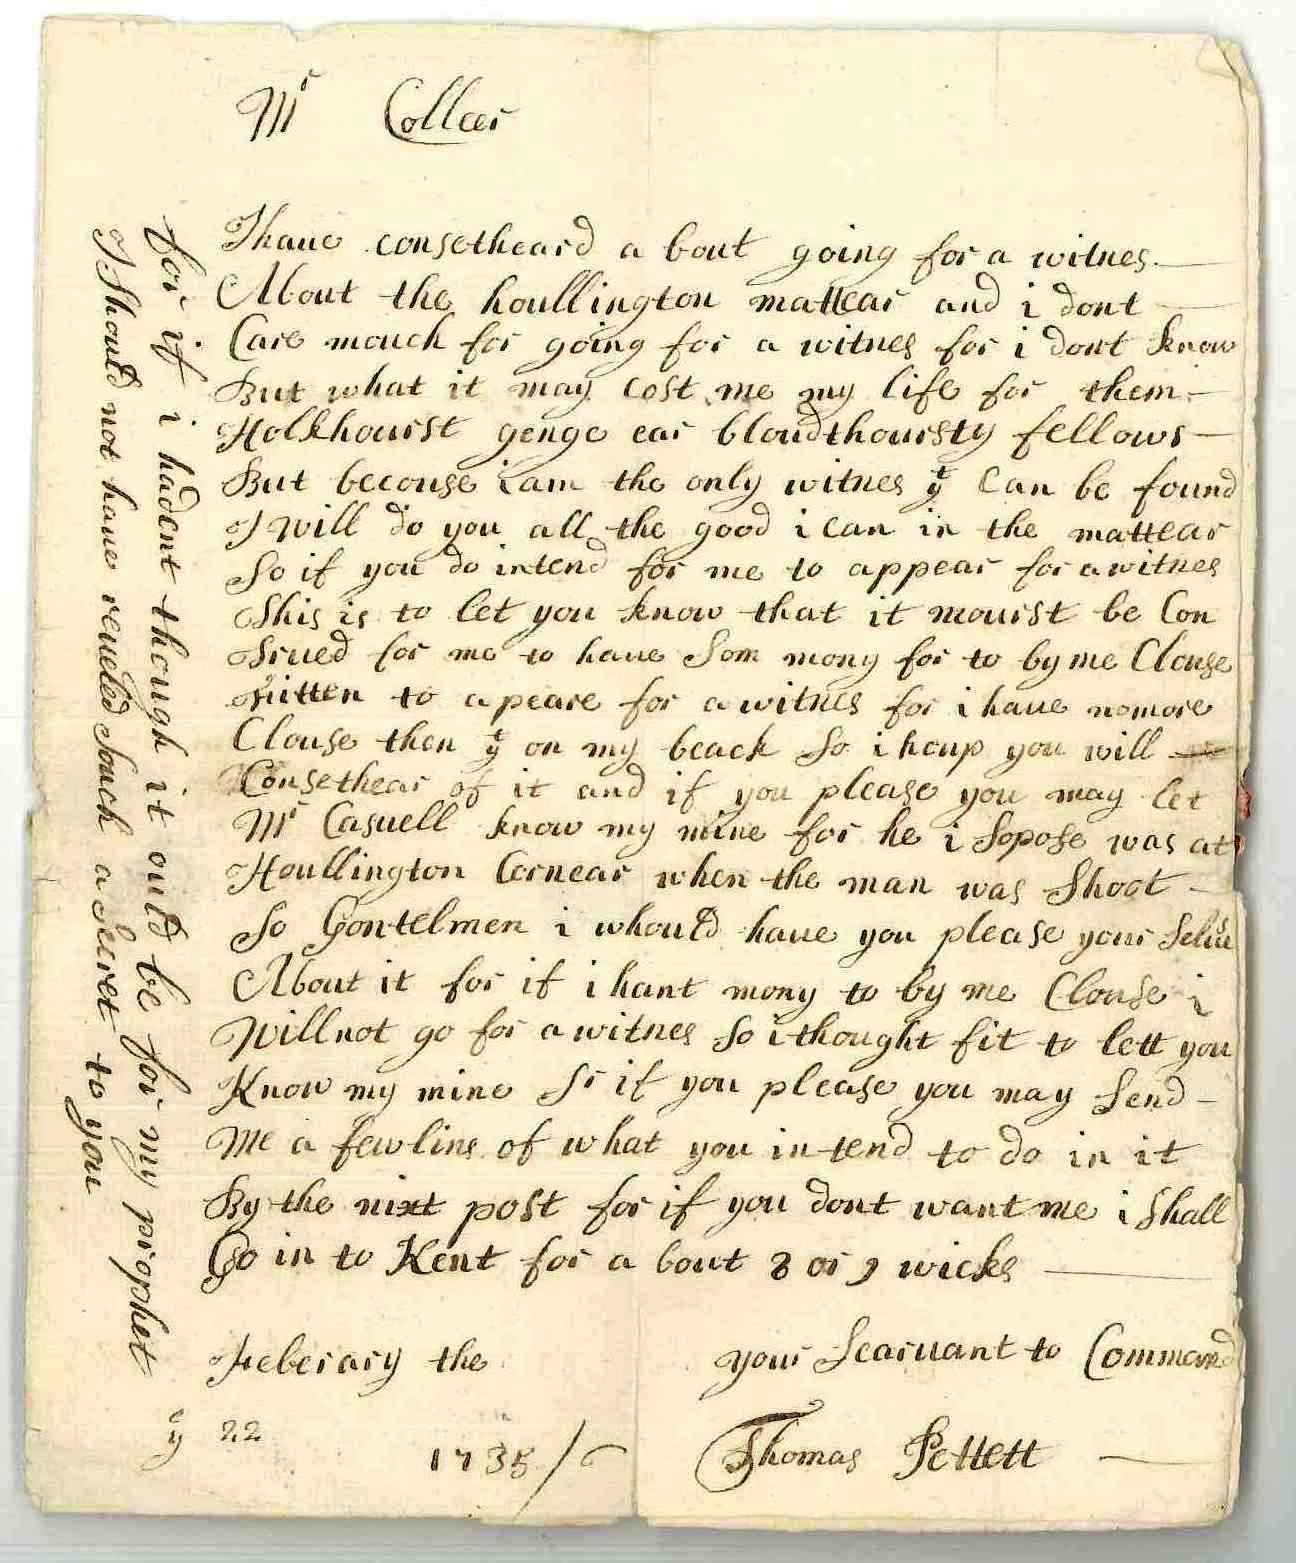 Letter from Thomas Pettet to John Collier